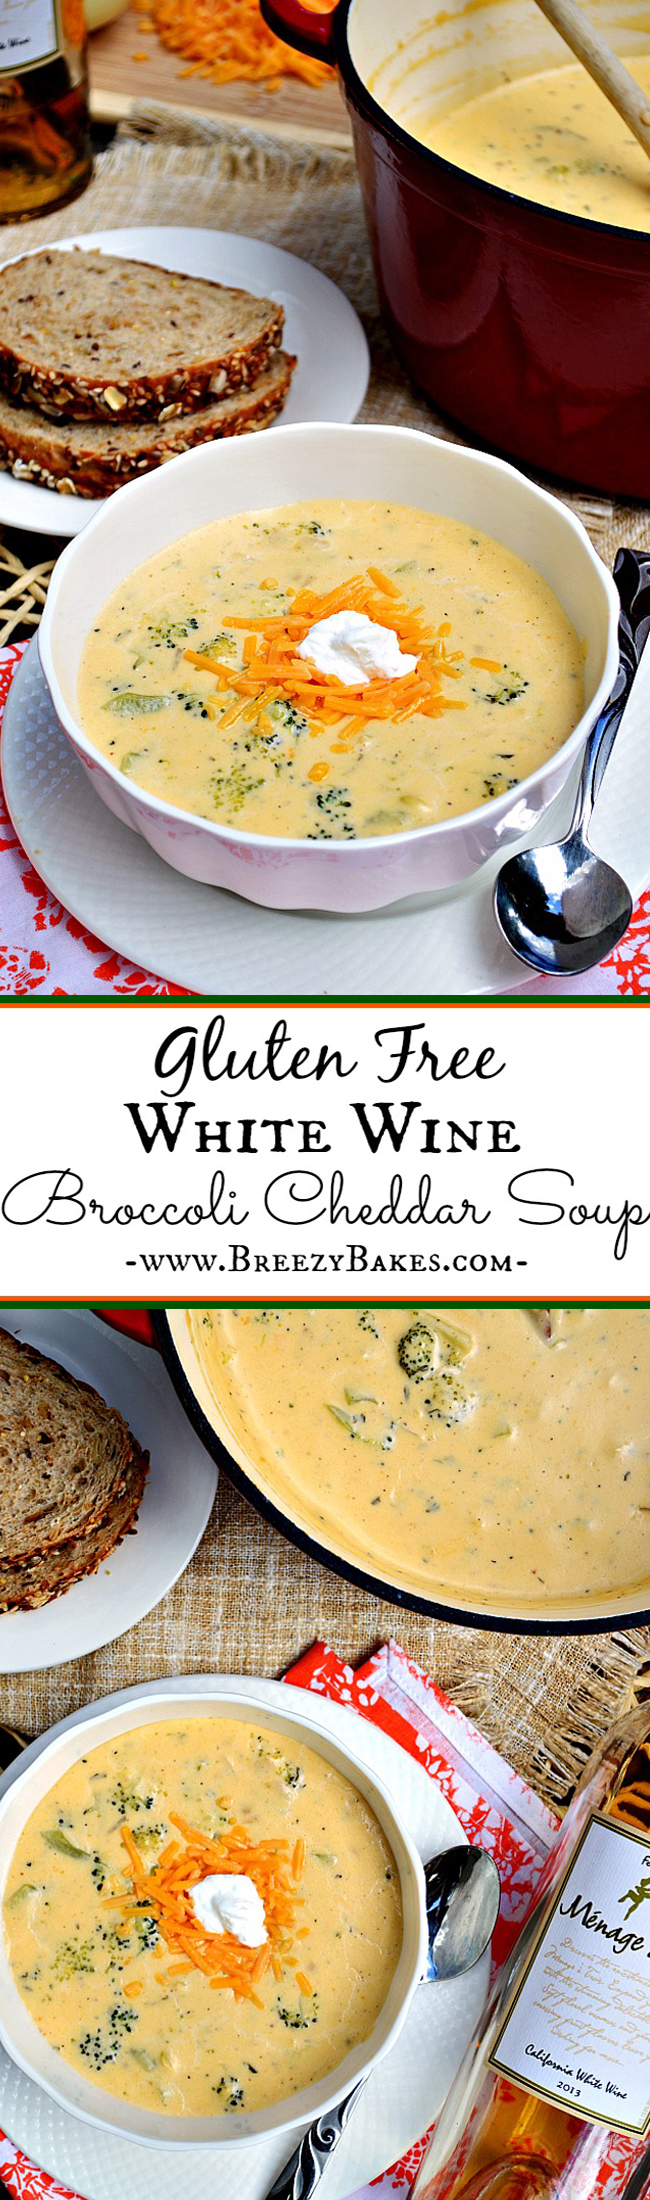 "This Gluten Free Broccoli Cheddar Soup surpasses the description of ""amazing"" and falls right into the category of ""phenomenal""! With a mixture of sharp cheddar and Havarti cheeses, this soup is winning in the creamy department."